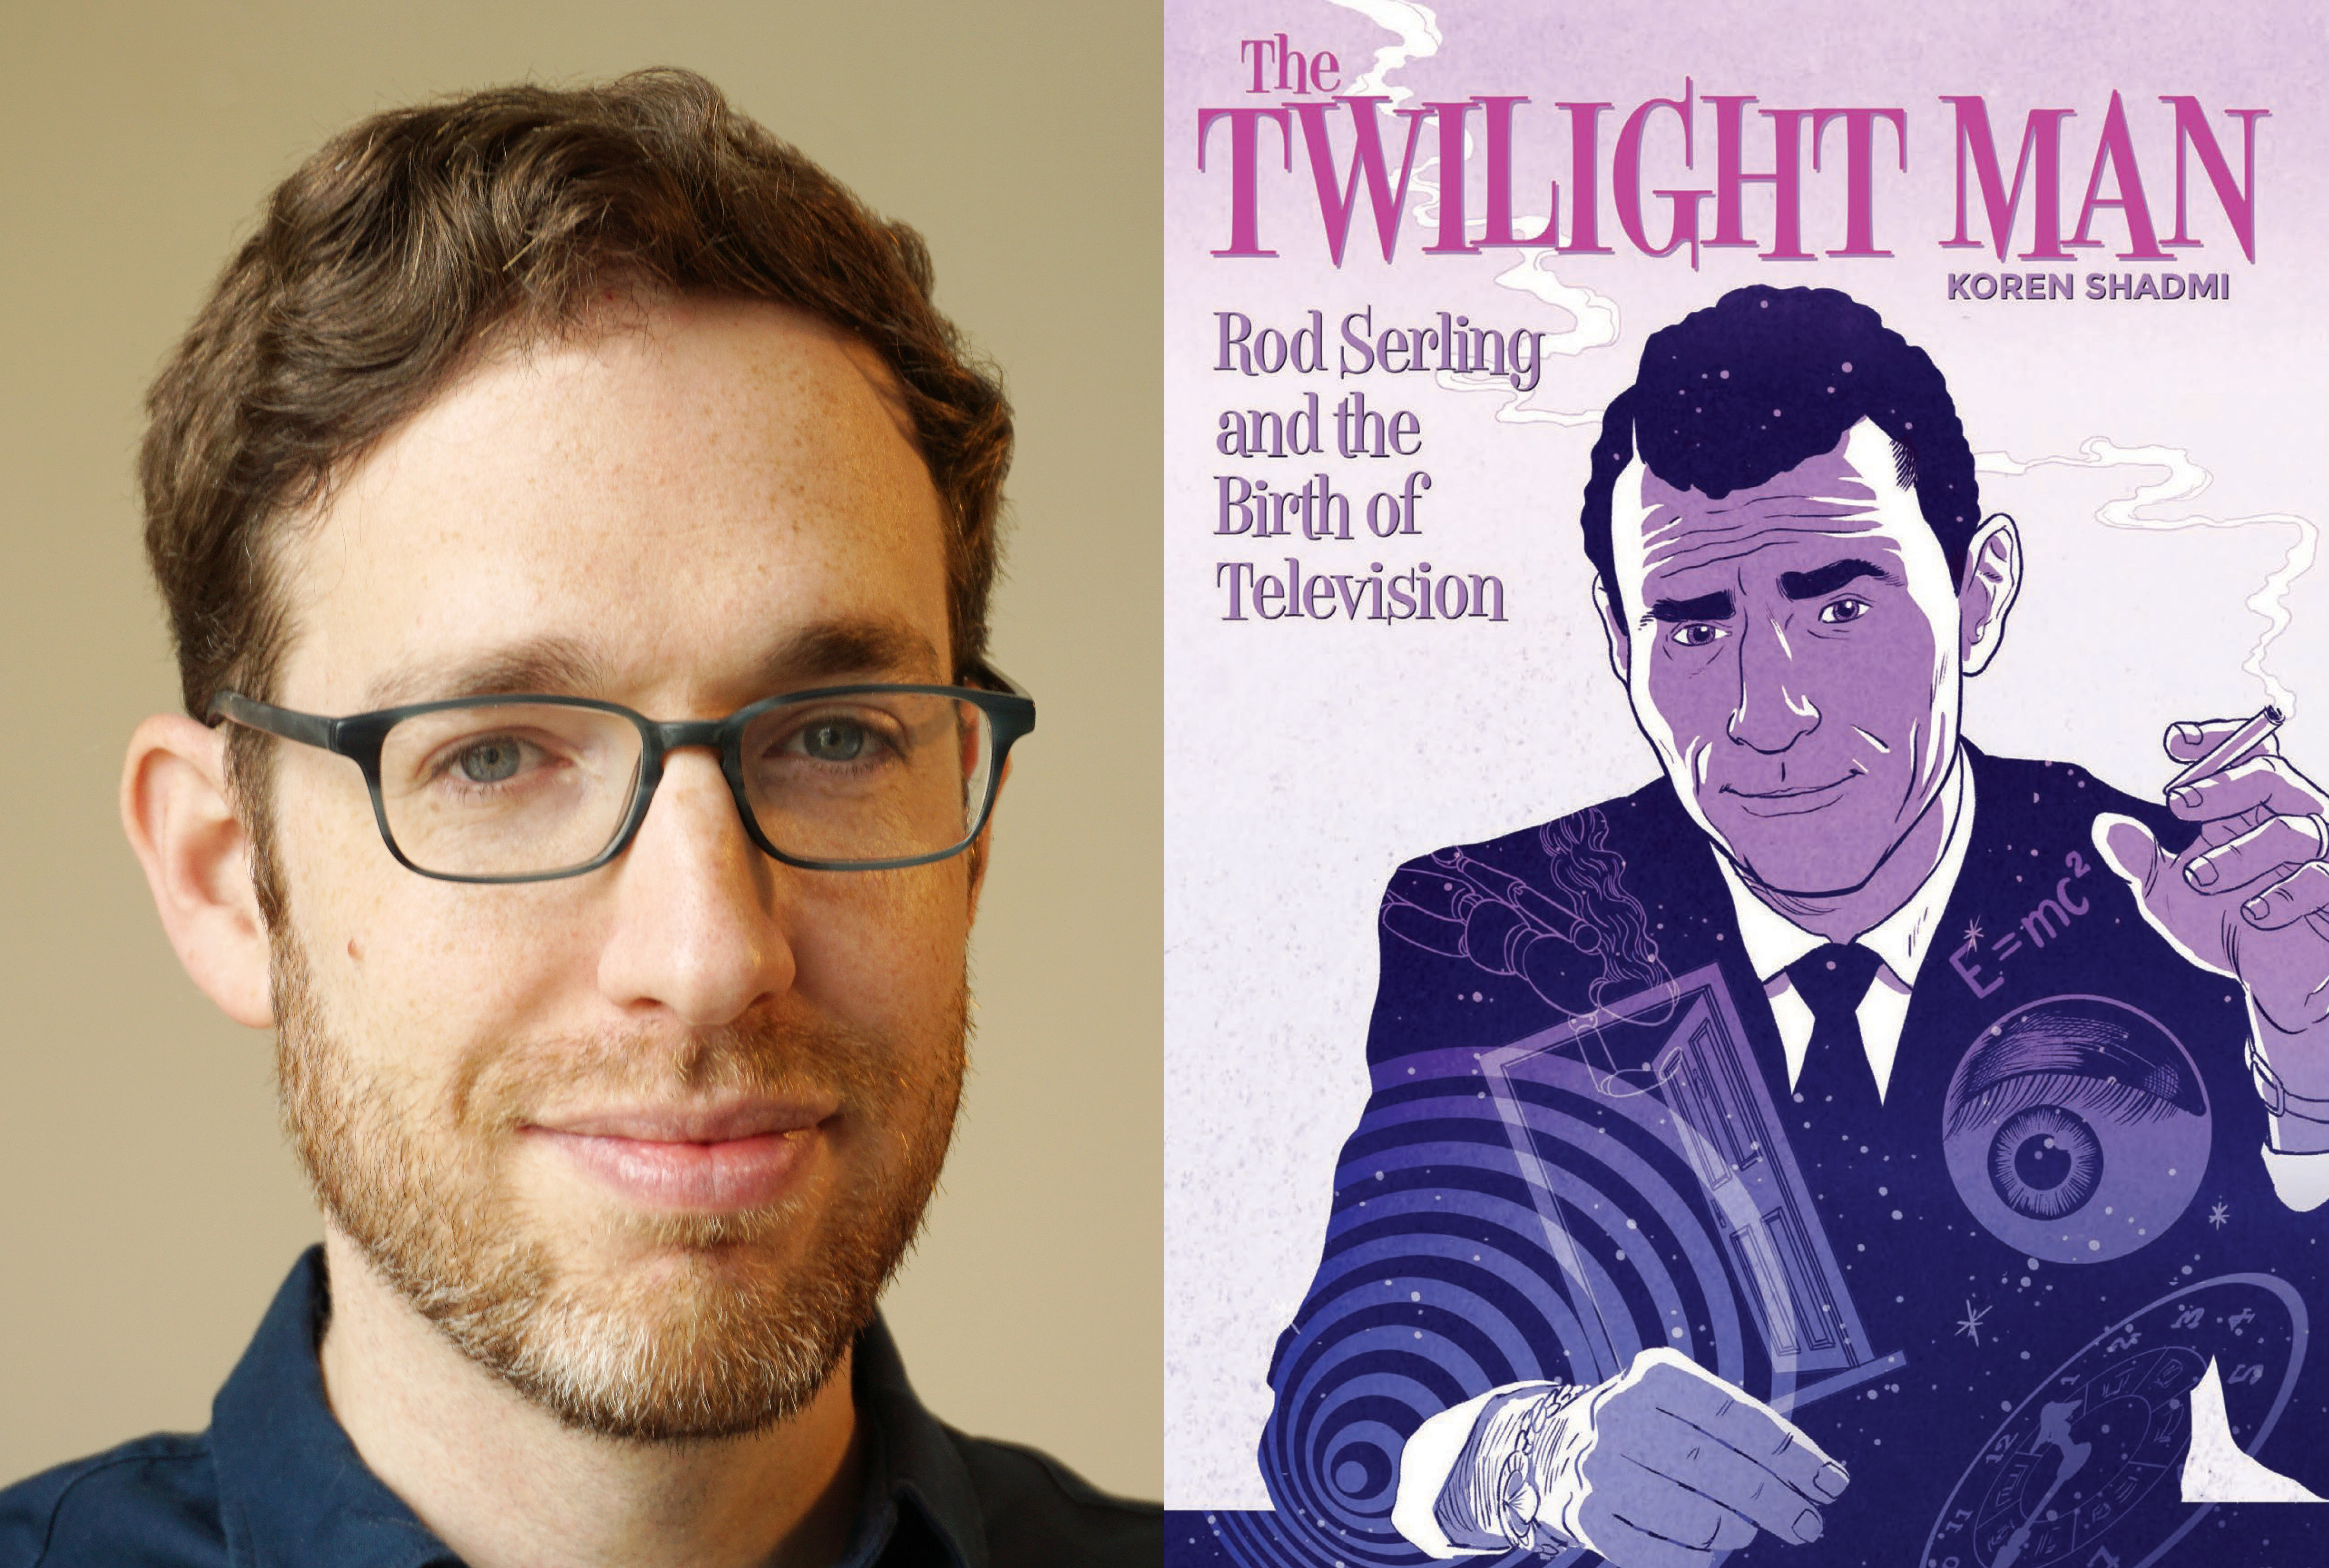 From left: Koren Shadmi. Cover of The Twilight Man: Rod Serling and the Birth of Television by Koren Shadmi. Image by.../ Courtesy of Superfan Promotions LLC.